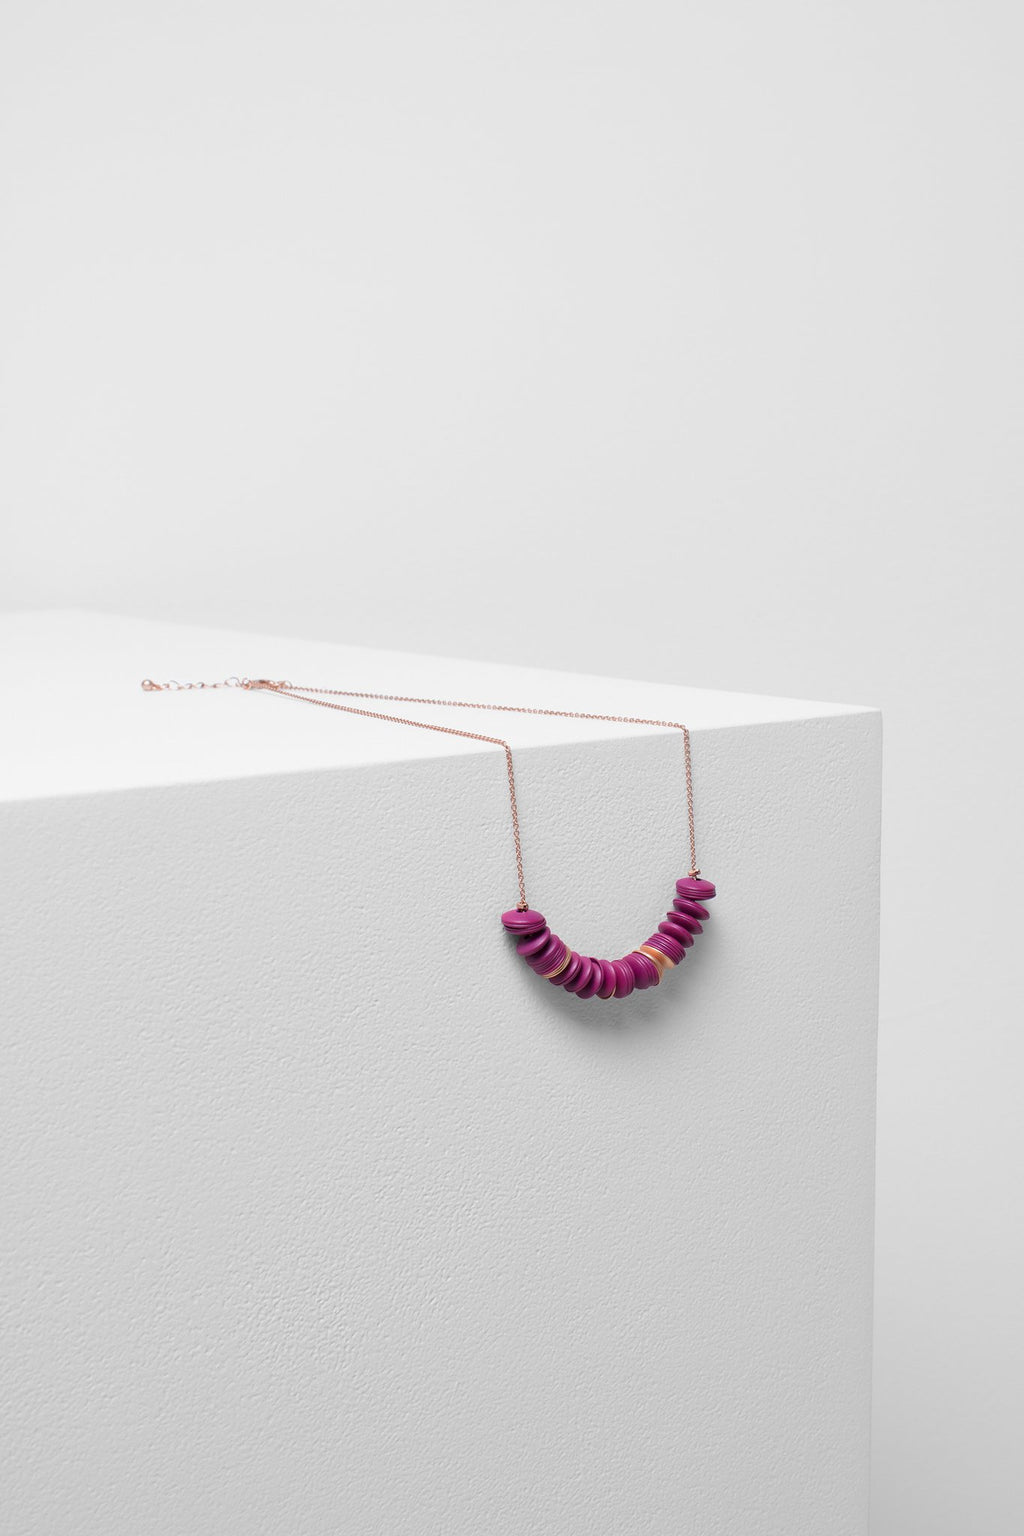 Buy Lerum Small Necklace from ELK The Label at PAYA boutique